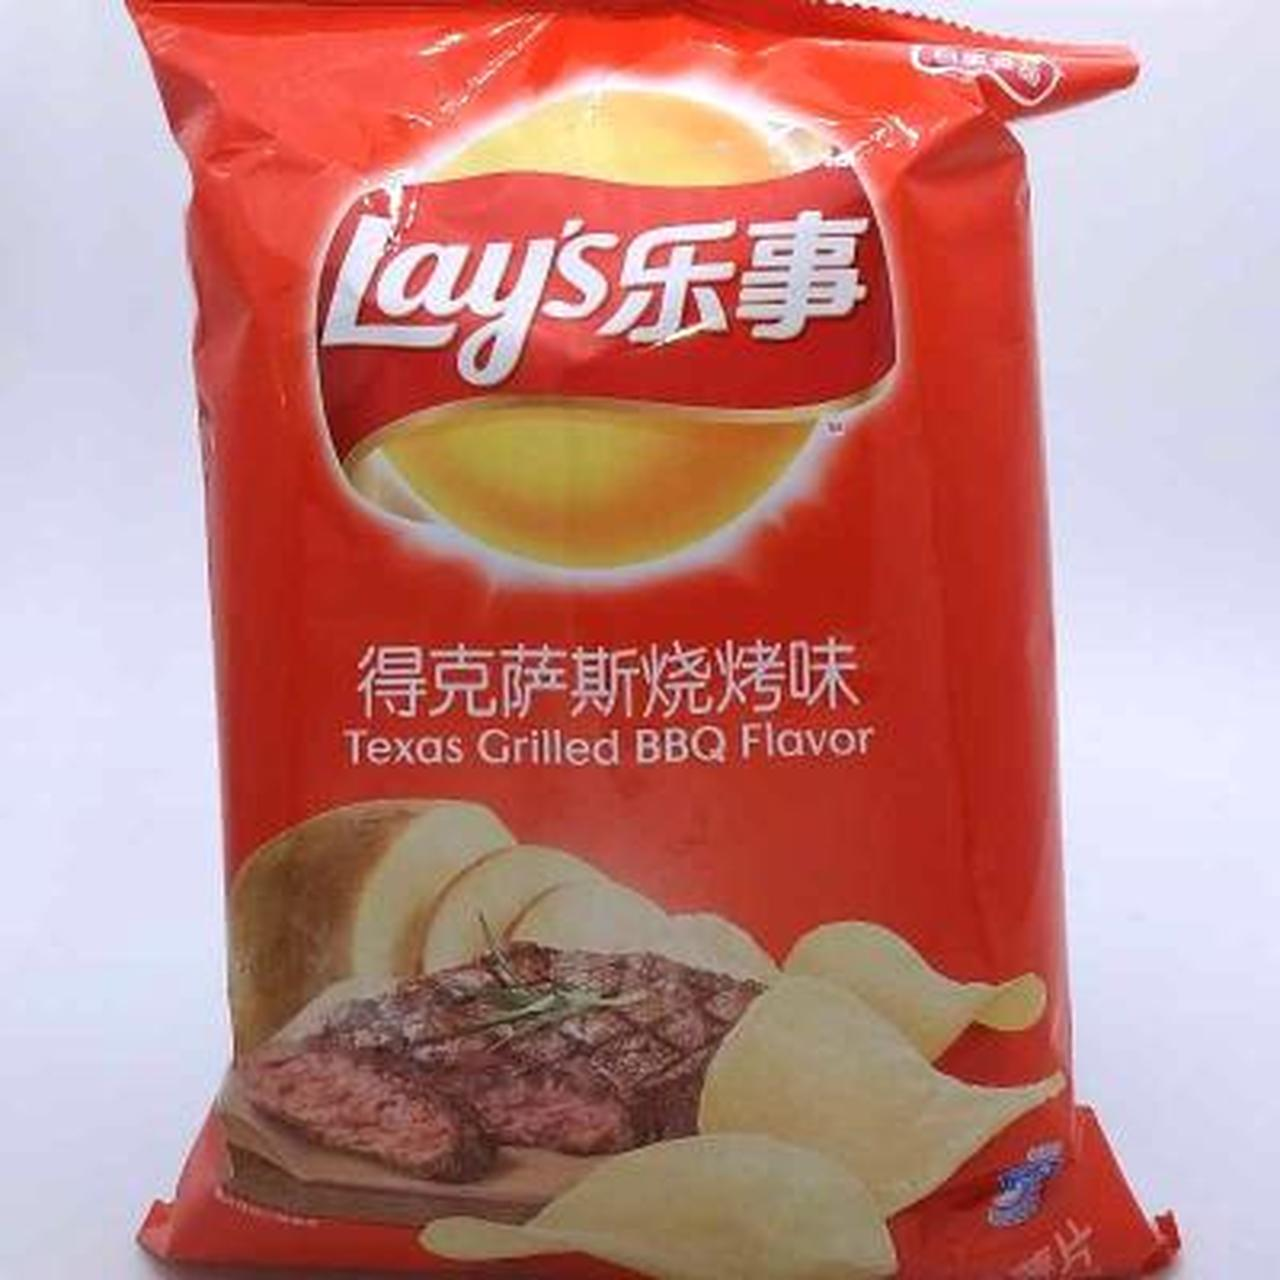 Lays Texas Grilled BBQ (China)